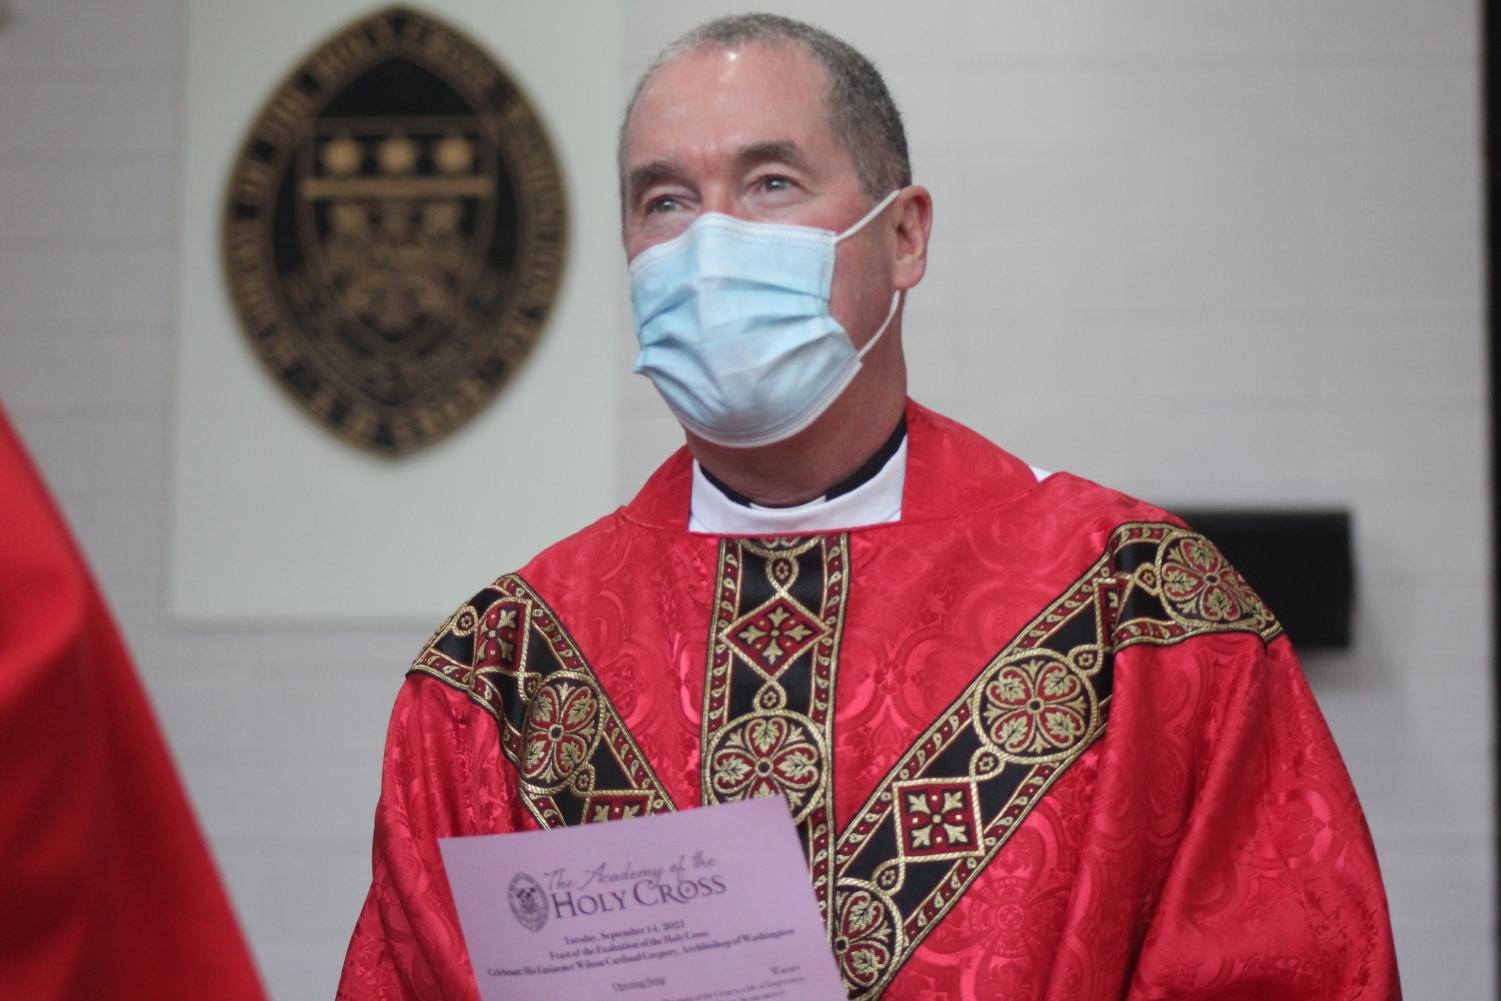 Father Van Dyke walking down the aisle at the end of Mass.